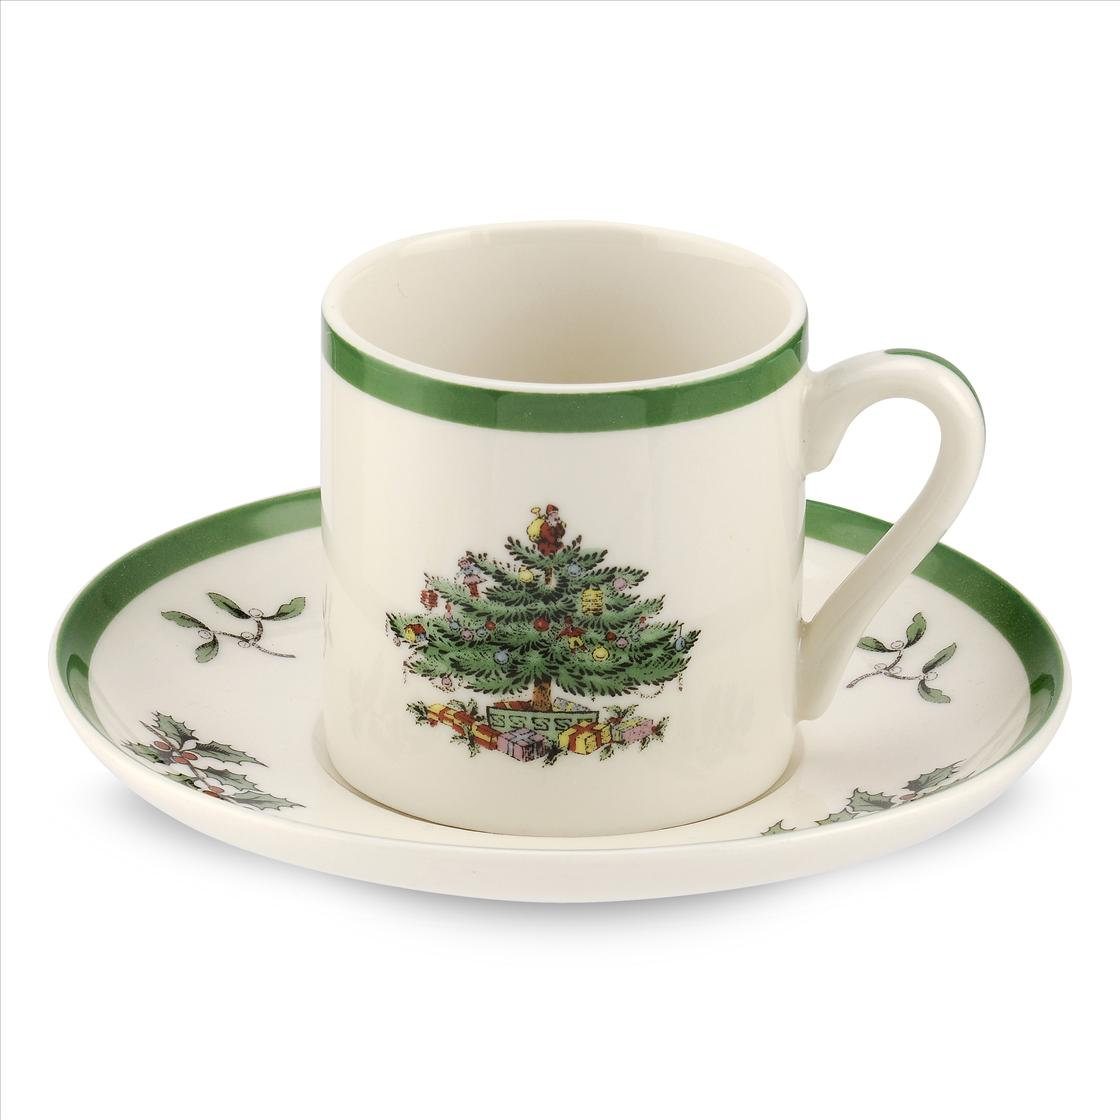 Spode Christmas Tree Set of 4 Espresso Cups  image number 0